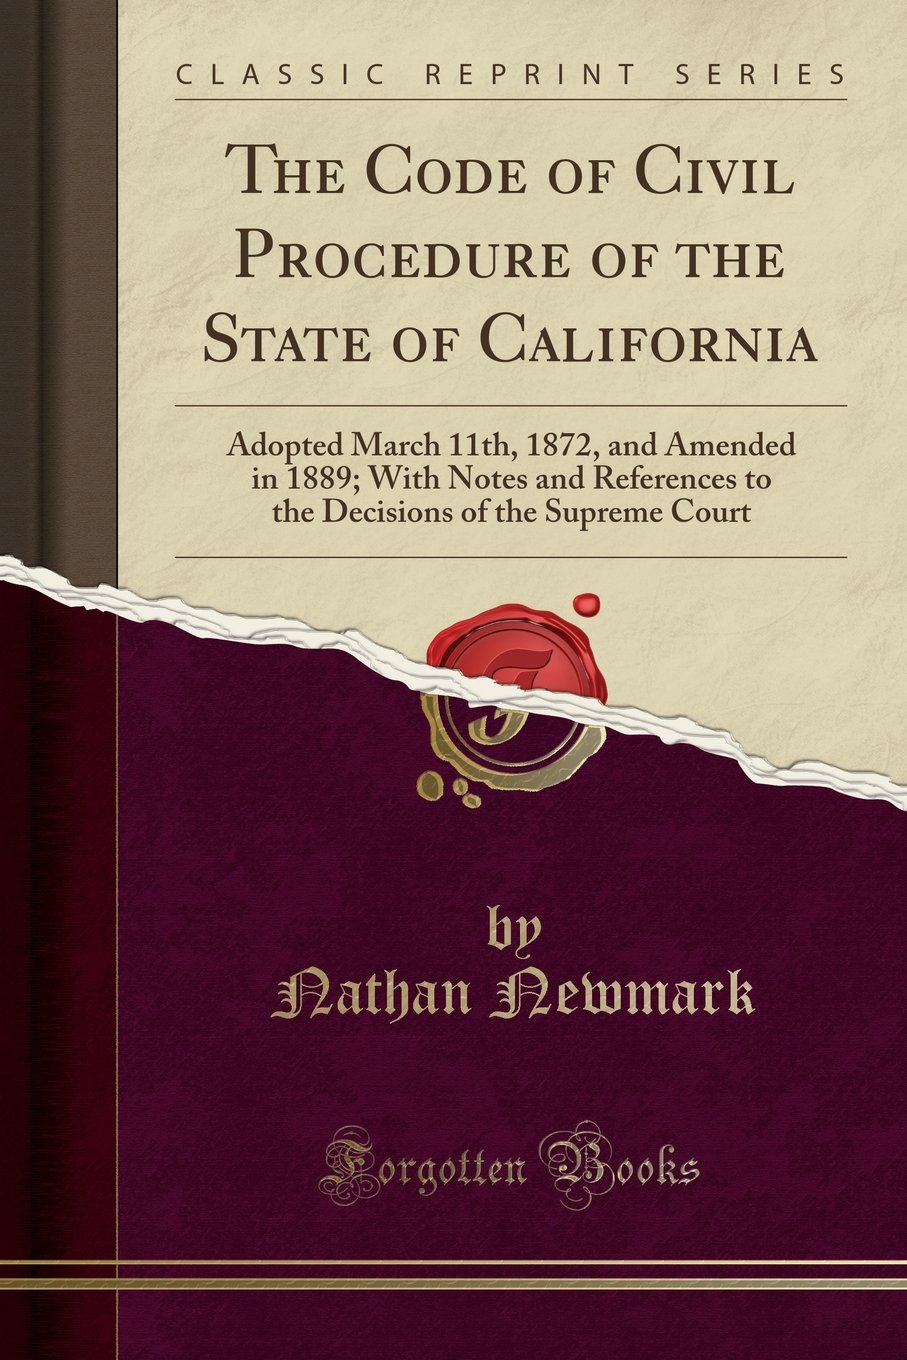 The Code of Civil Procedure of the State of California: Adopted March 11th, 1872, and Amended in 1889; With Notes and References to the Decisions of the Supreme Court (Classic Reprint) PDF ePub fb2 book